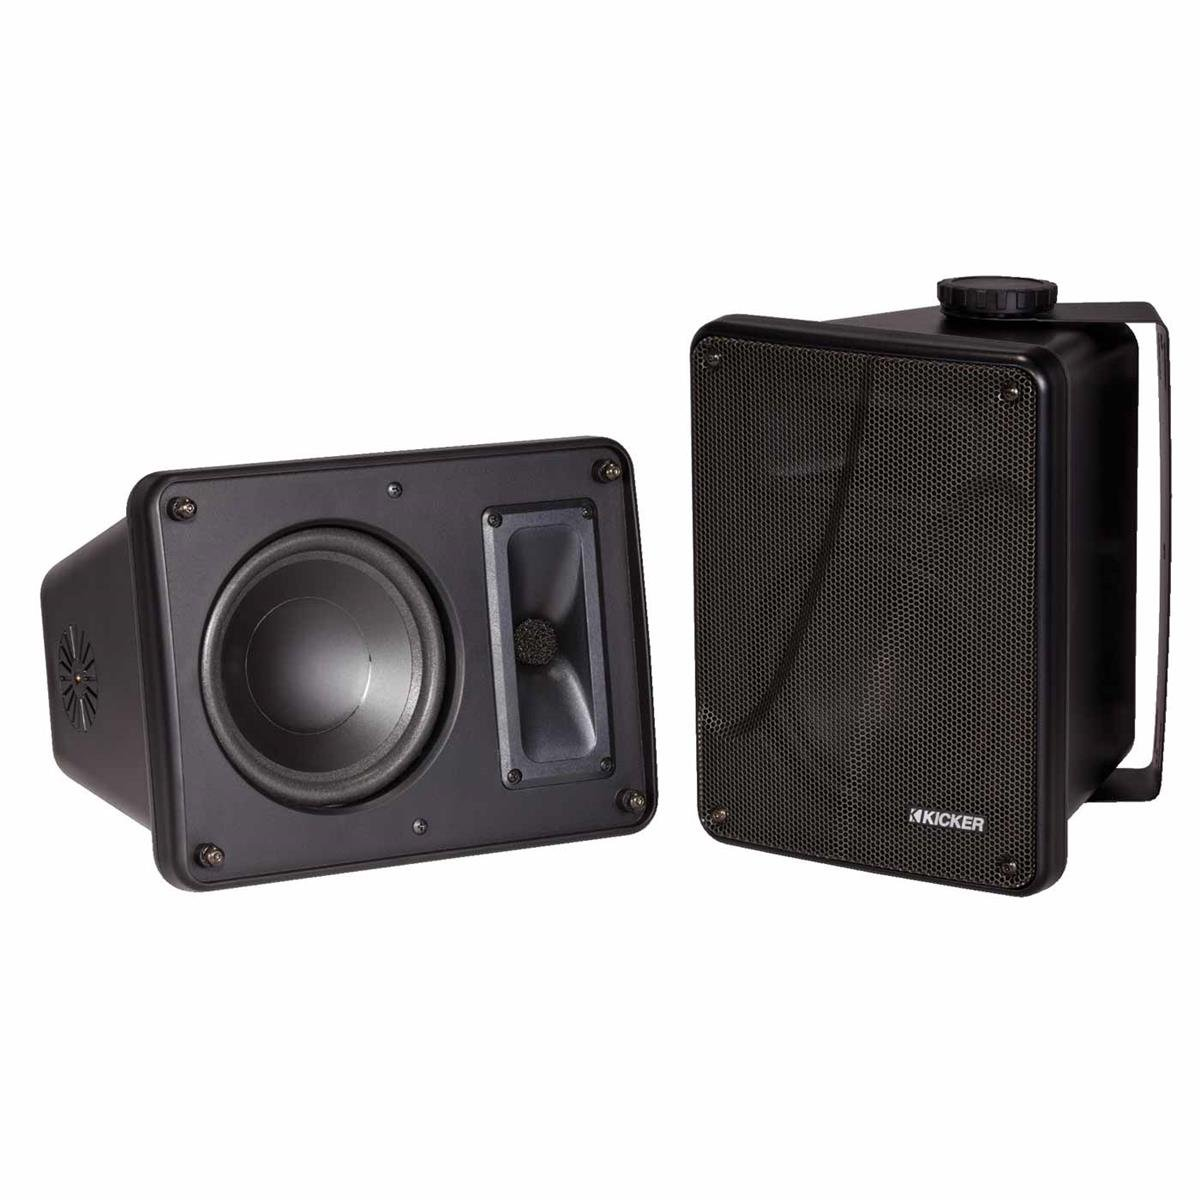 Kicker KB6000 6.5'' Full Range Indoor/Outdoor/Marine Speakers - Black 11KB6000B